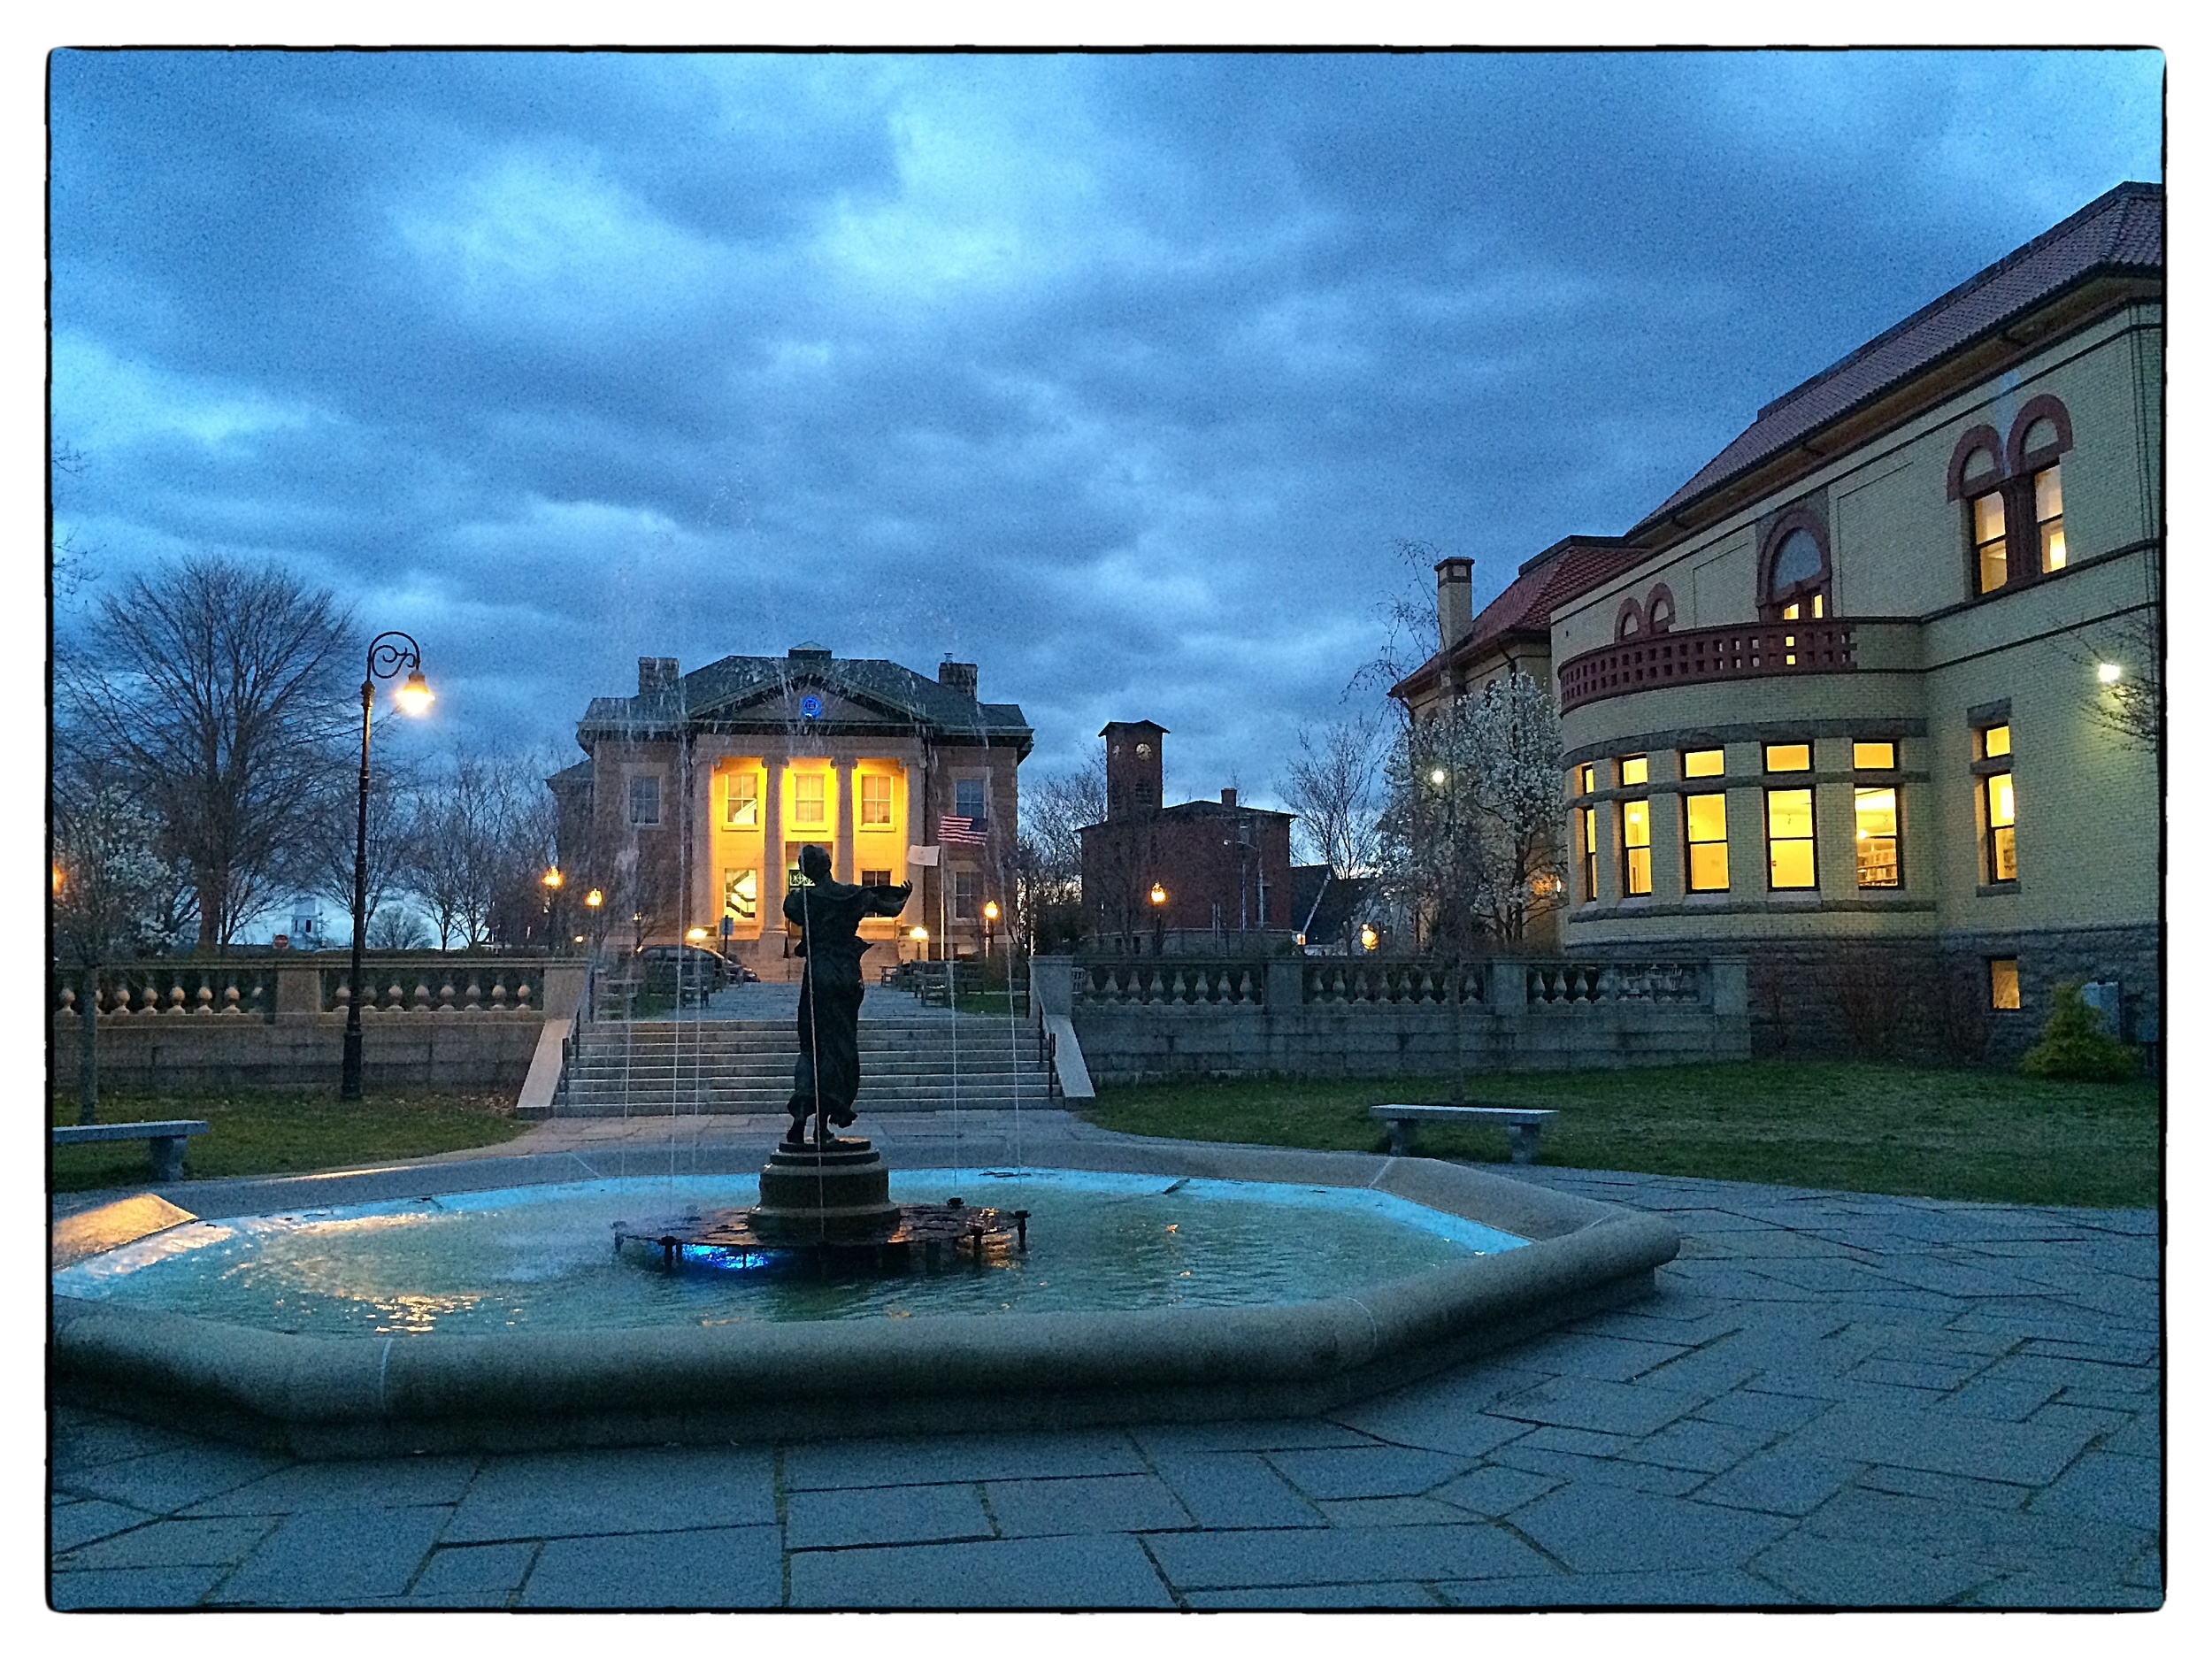 Spring evening at Wilcox Memorial Fountain in  Wilcox Park,  Westerly, R.I., shot on April 23, 2014.